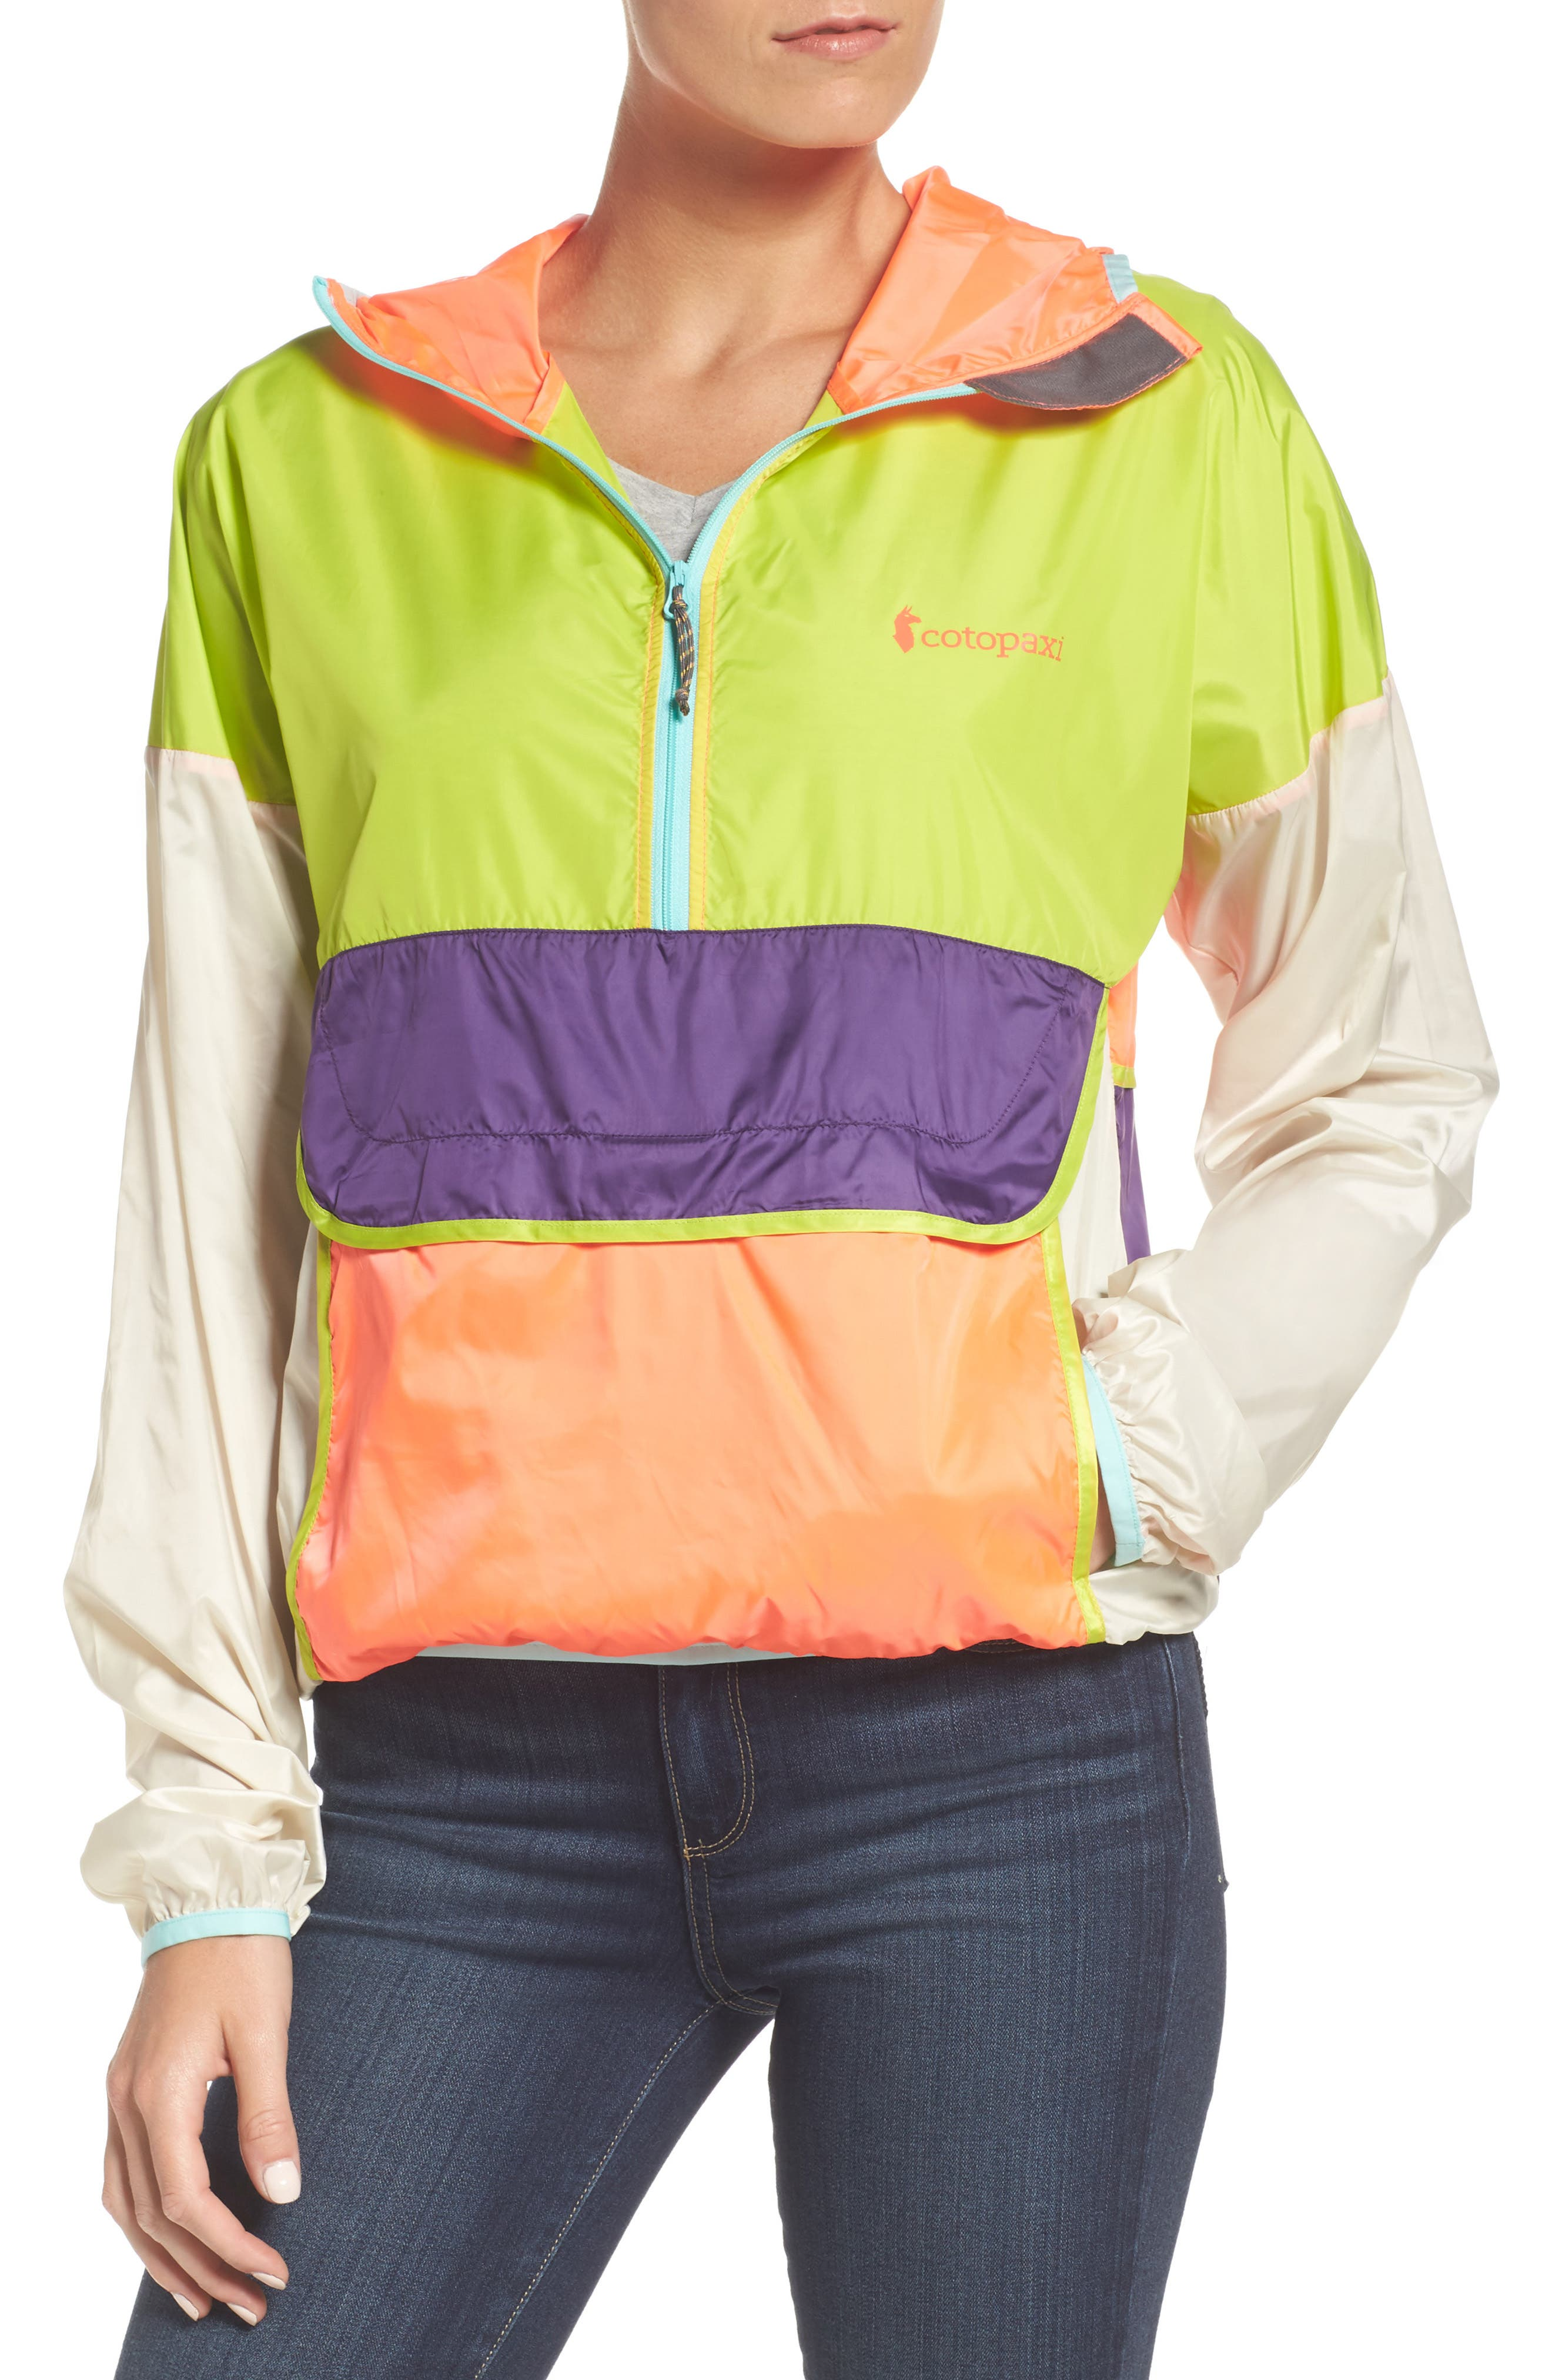 Cotopaxi Teca Packable Water Resistant Windbreaker Jacket